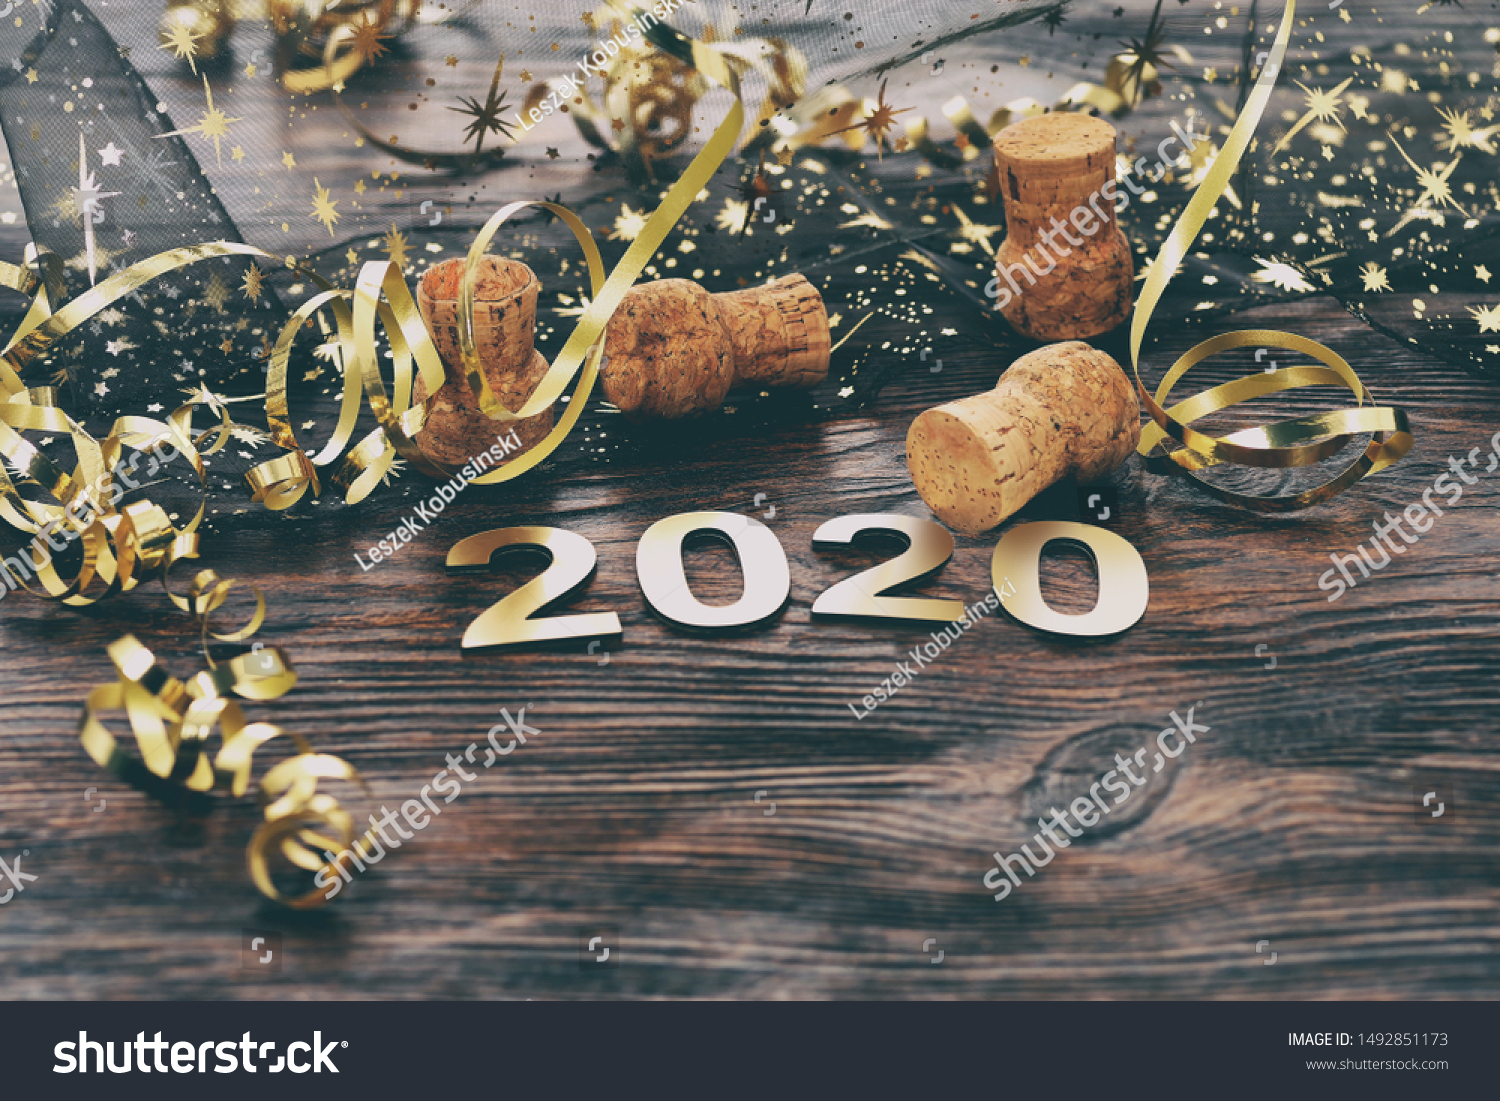 Happy New Year 2020. Symbol from number 2020 on wooden background #1492851173